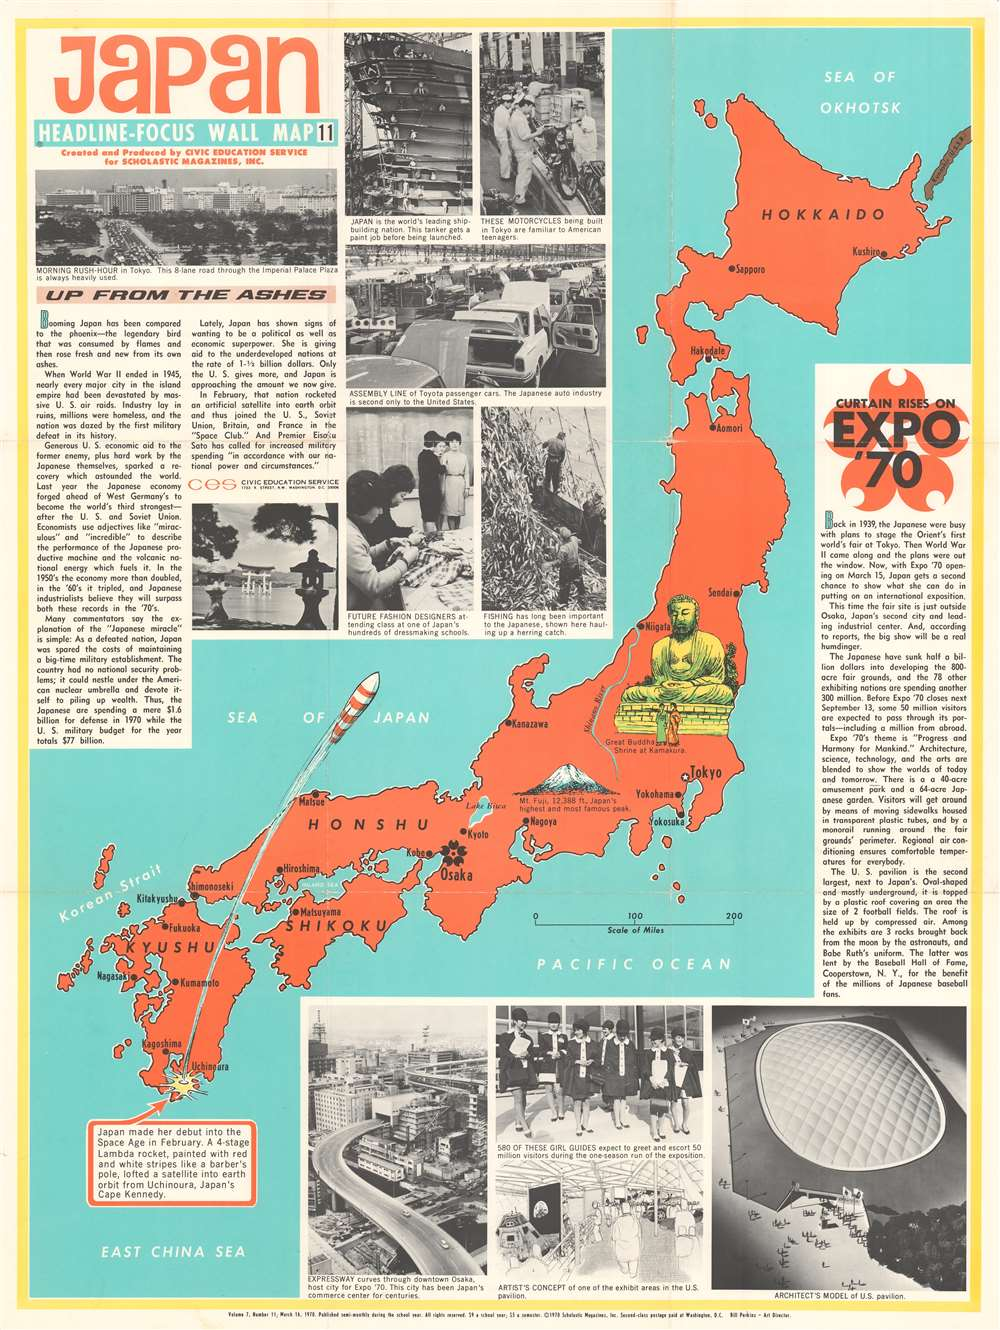 Japan. Headline Focus Wall Map 11. - Main View